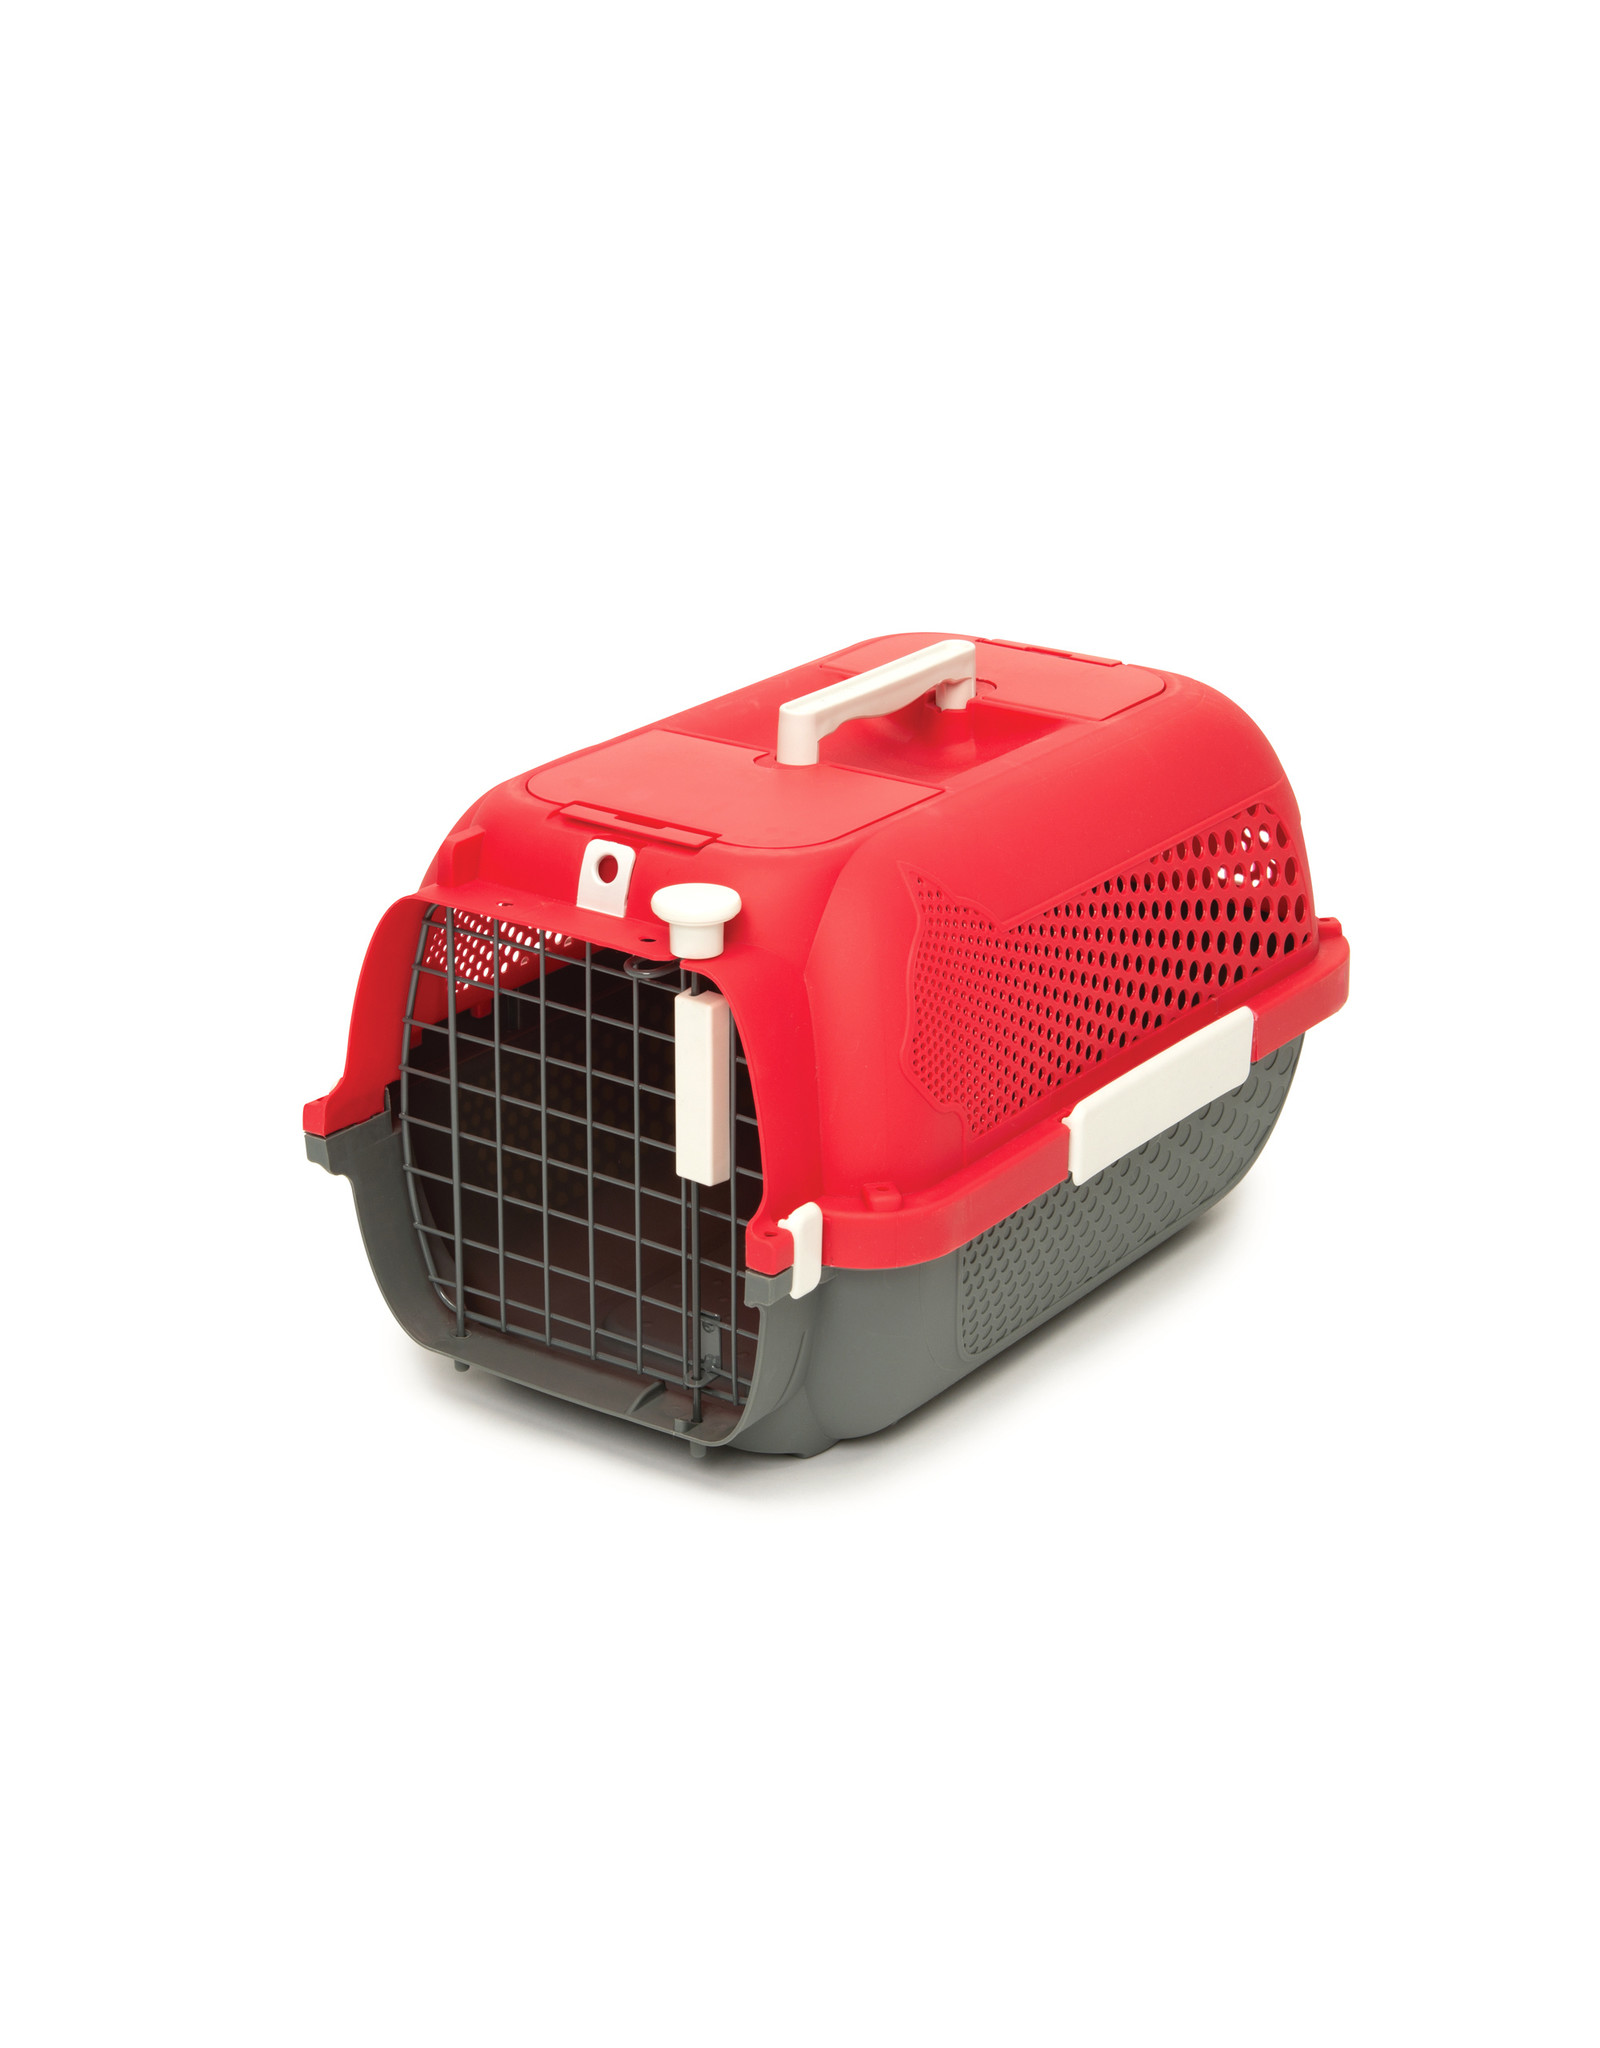 CatIt Cat Carrier Cherry Red Small - 48.3Lx32.6Wx28Hcm (19x12.8x11in)